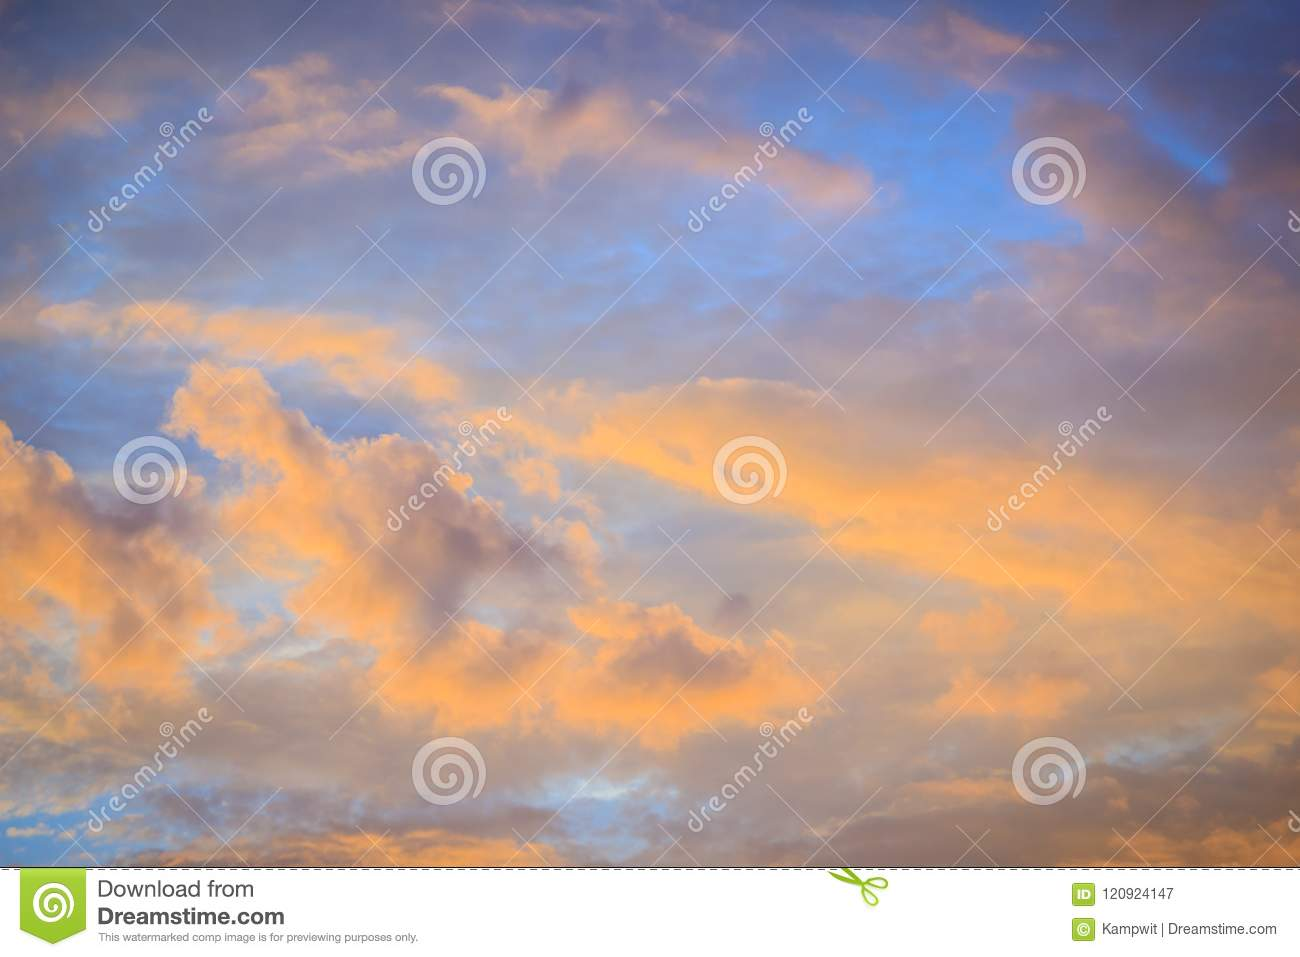 Red cloud and blue sky background. Dramatic sunset sky began to change from blue to orange.